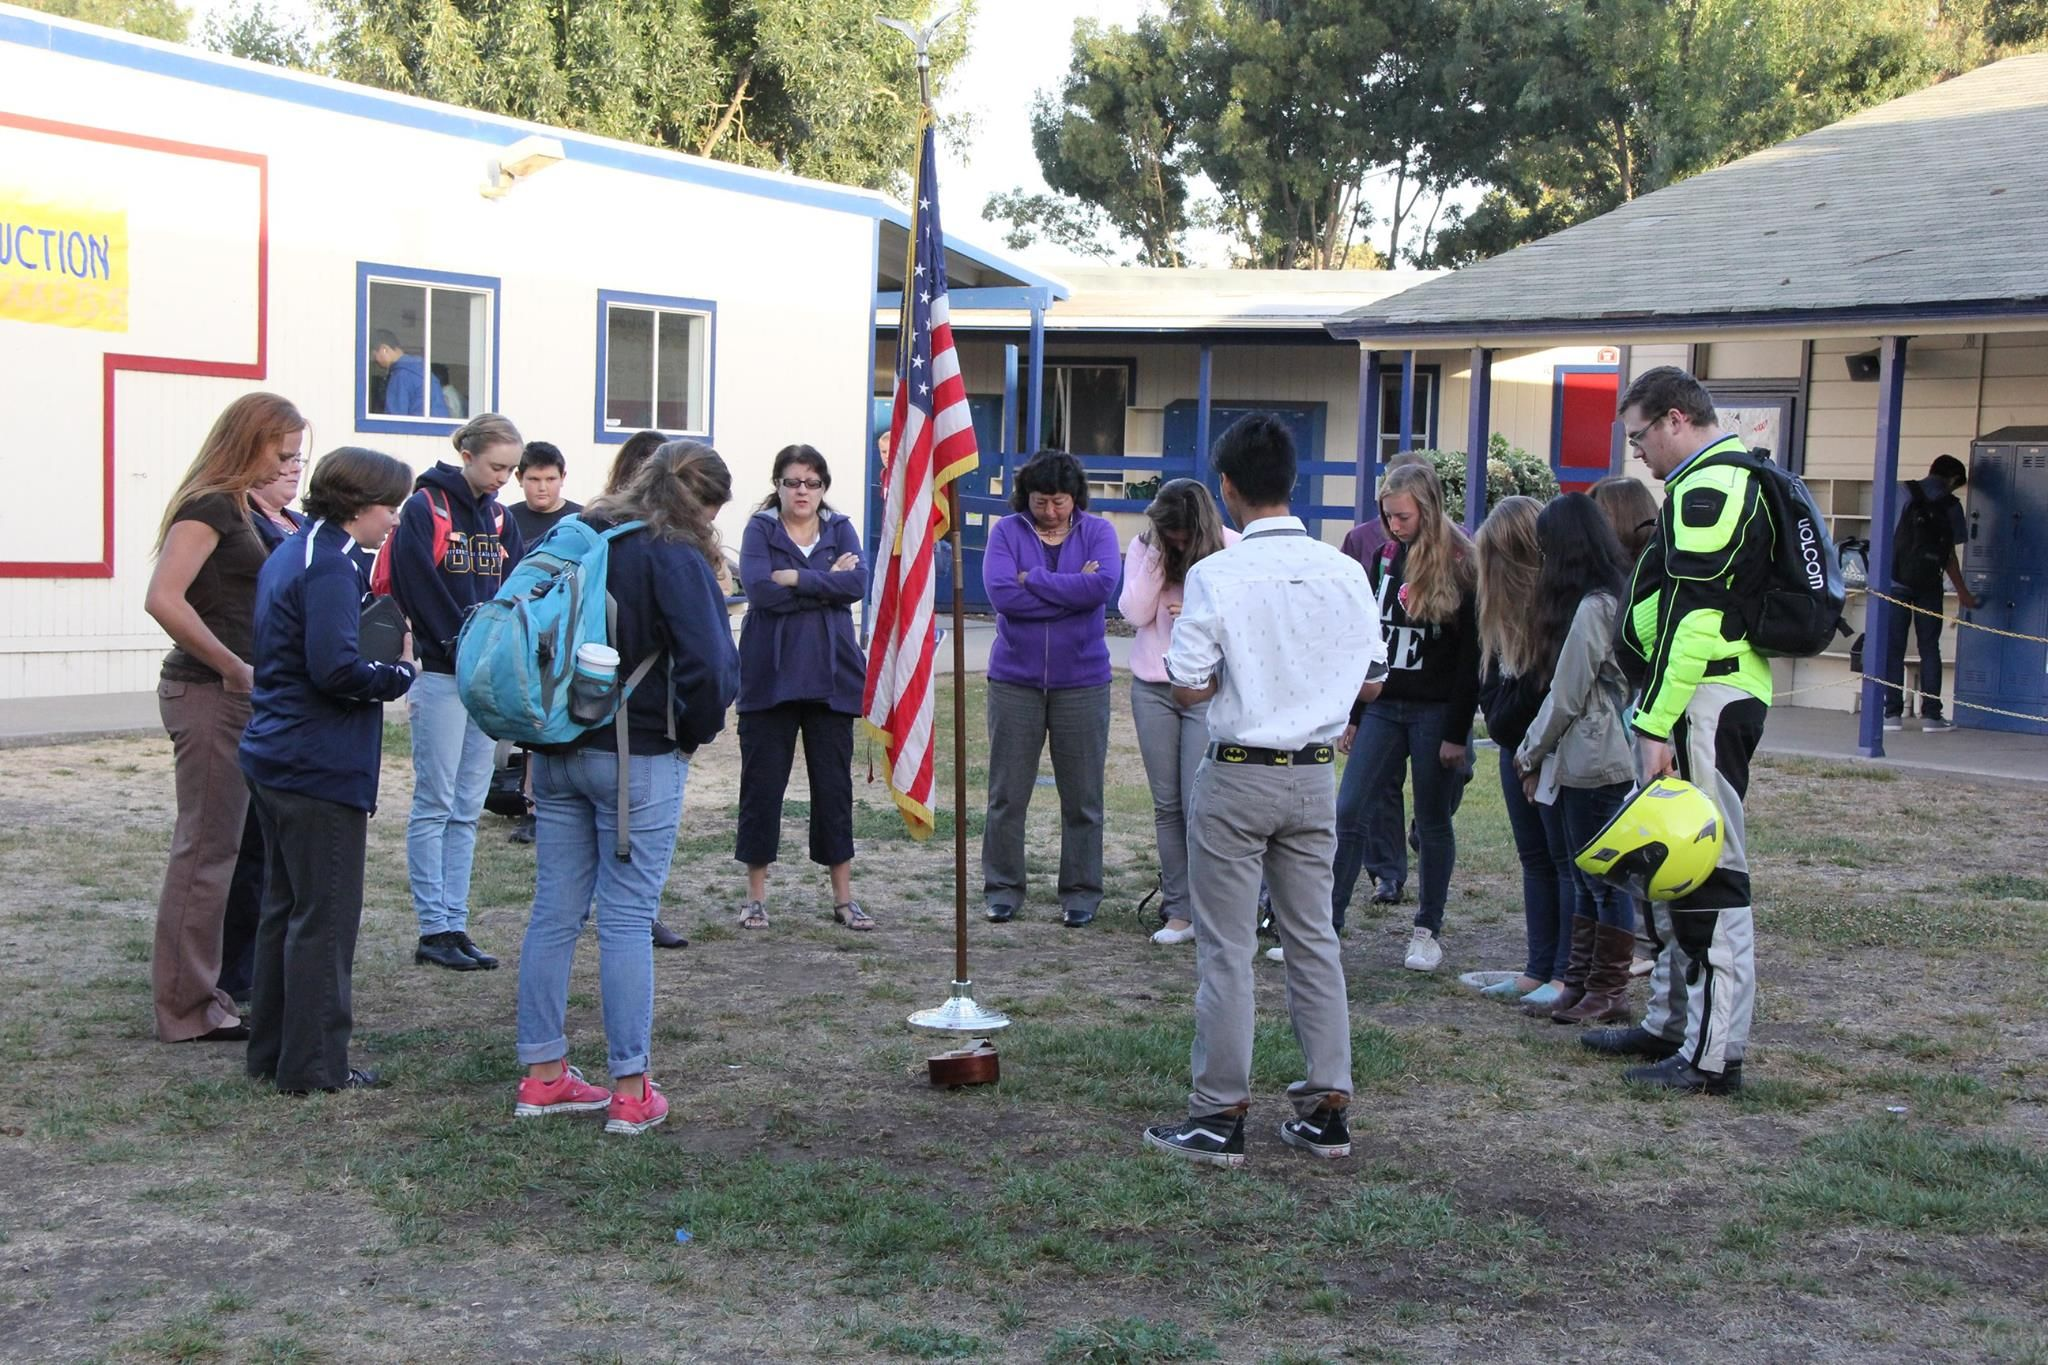 See You At The Pole Is An Annual Gathering Around The Flag Pole Of Students And Teachers To Pray For Their Country Thei Christian School School Academy School